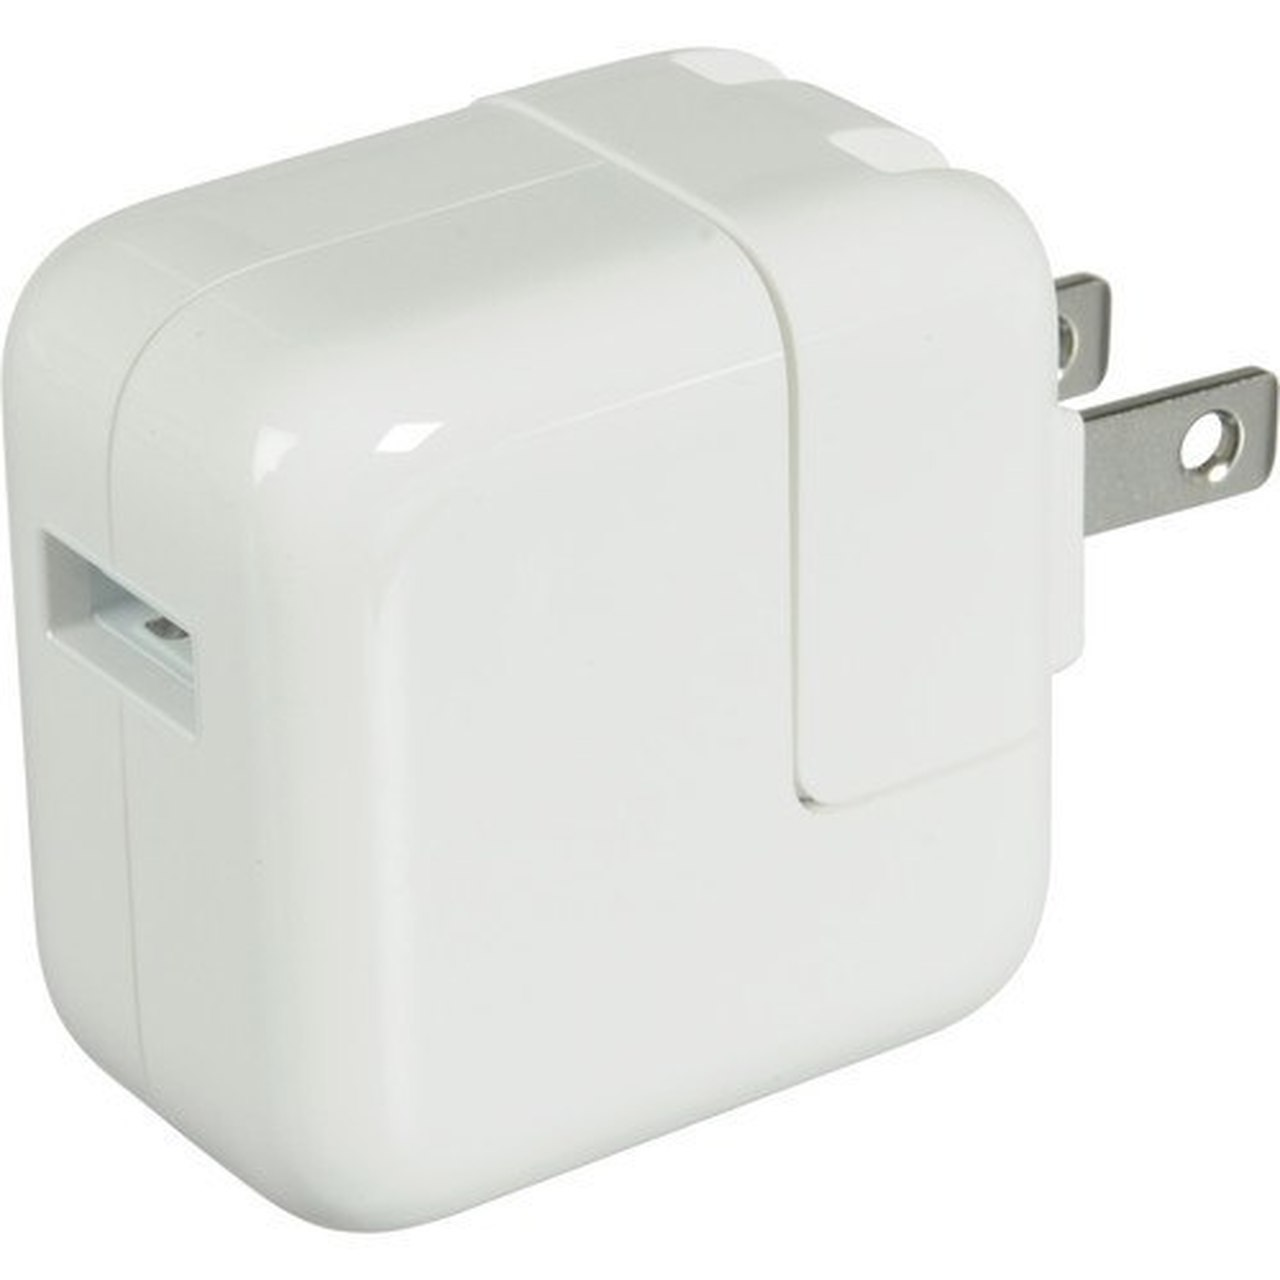 Apple OEM A1401 12W USB Wall Charger